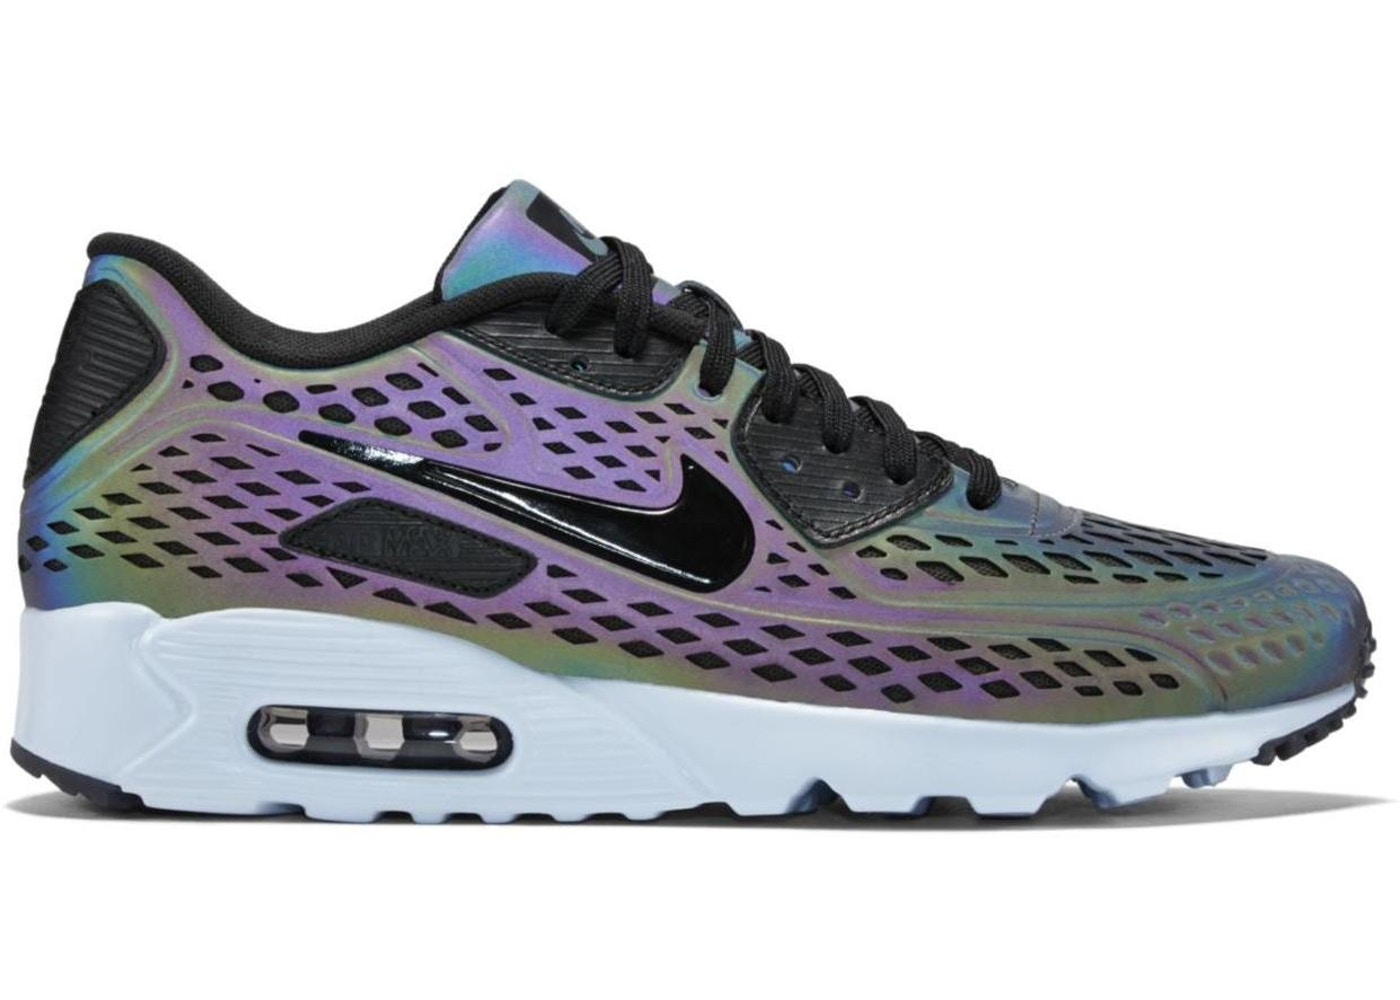 promo code cd1c7 d88c9 Air Max 90 Ultra Moire Iridescent - 777427-200